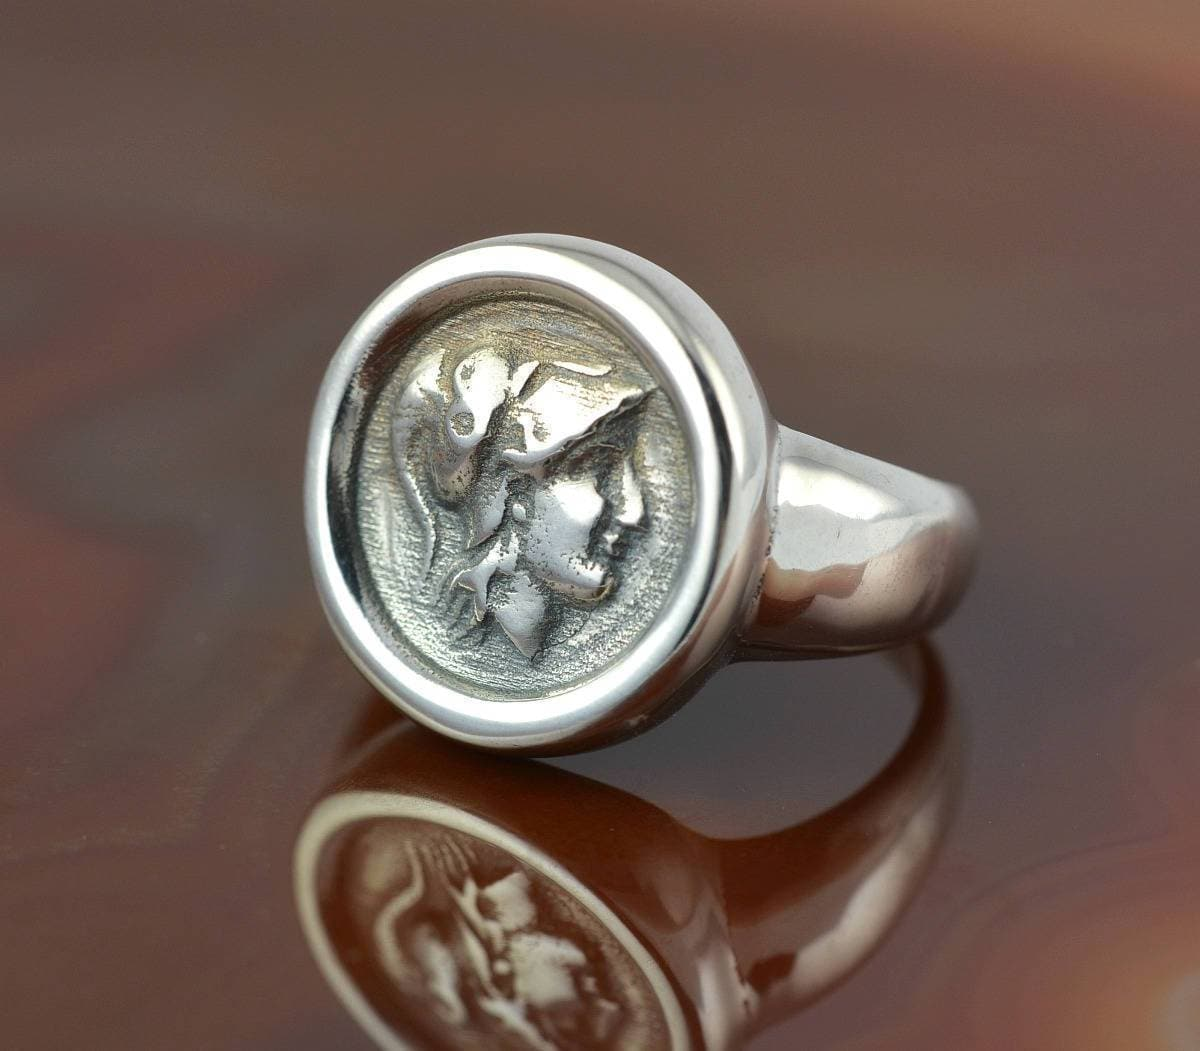 ancient greek coin silver ring Athena ring antique coin ring greek ring Athena coin coin ring antique rings antique ring Athena ring